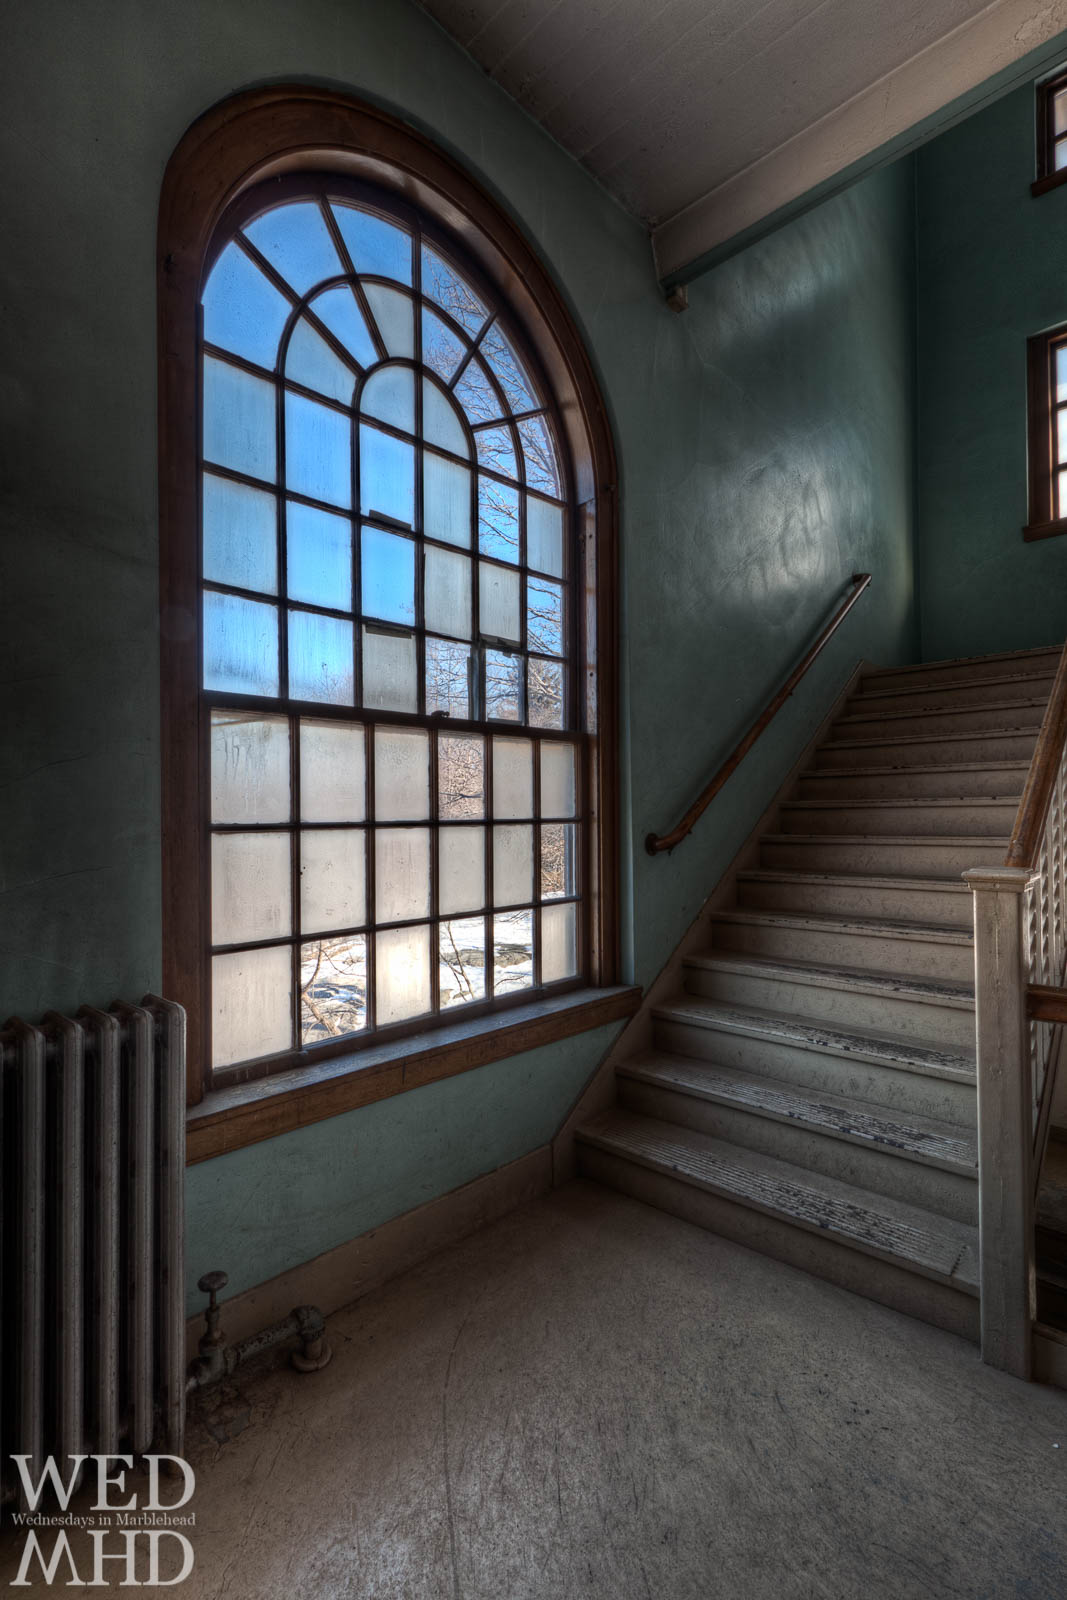 The Stairwells at the Old Glover School